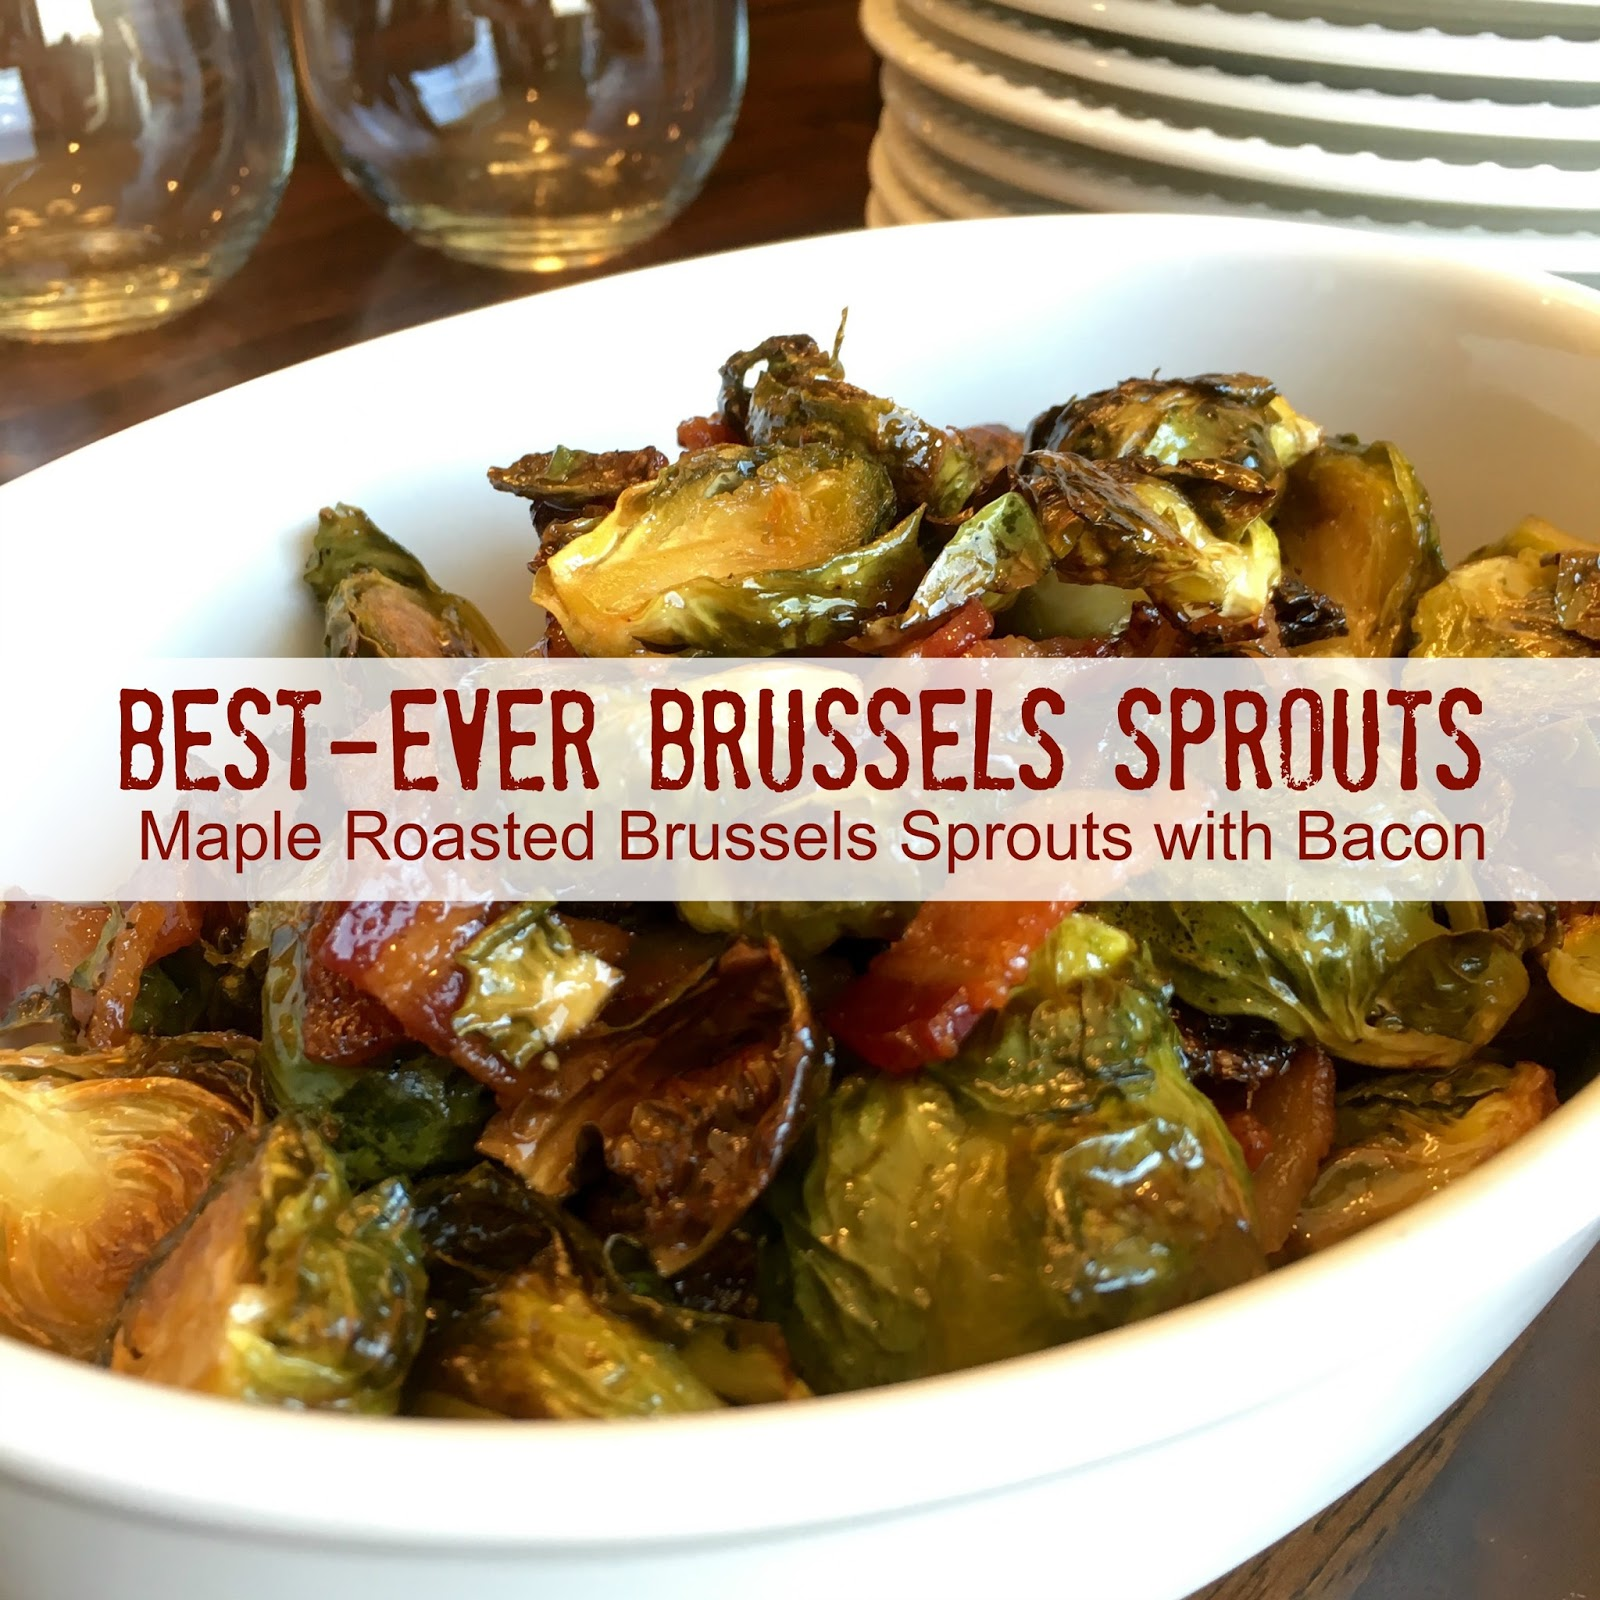 Best-Ever Brussels Sprouts - Maple Roasted Brussels ...